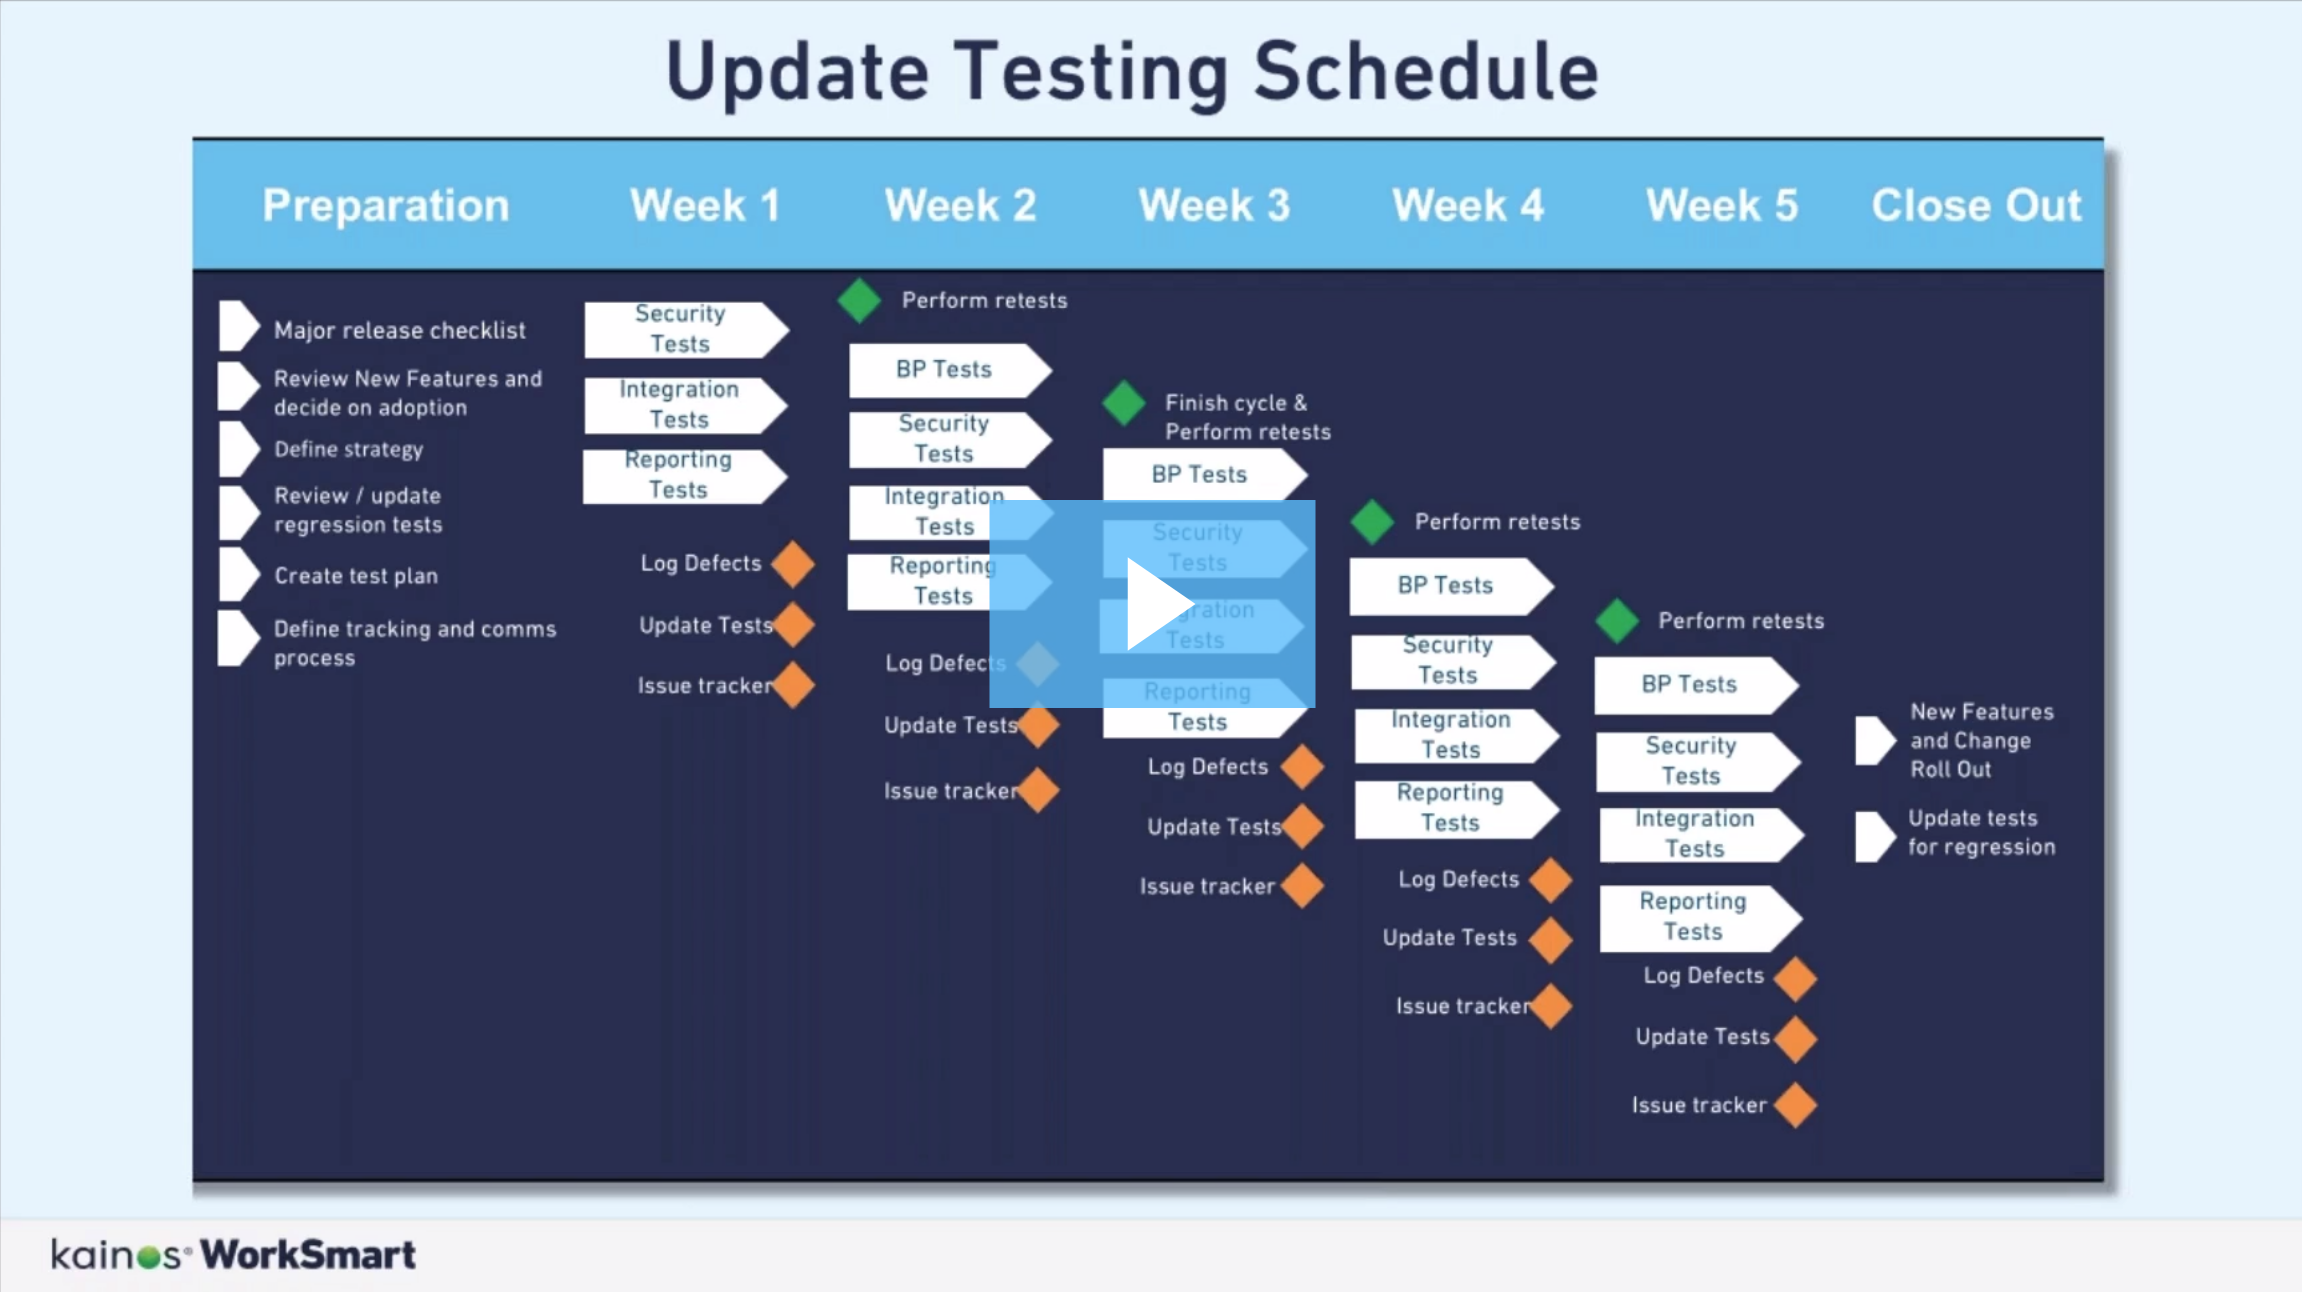 The Insider's Guide to Testing Workday Updates: A Live Q&A